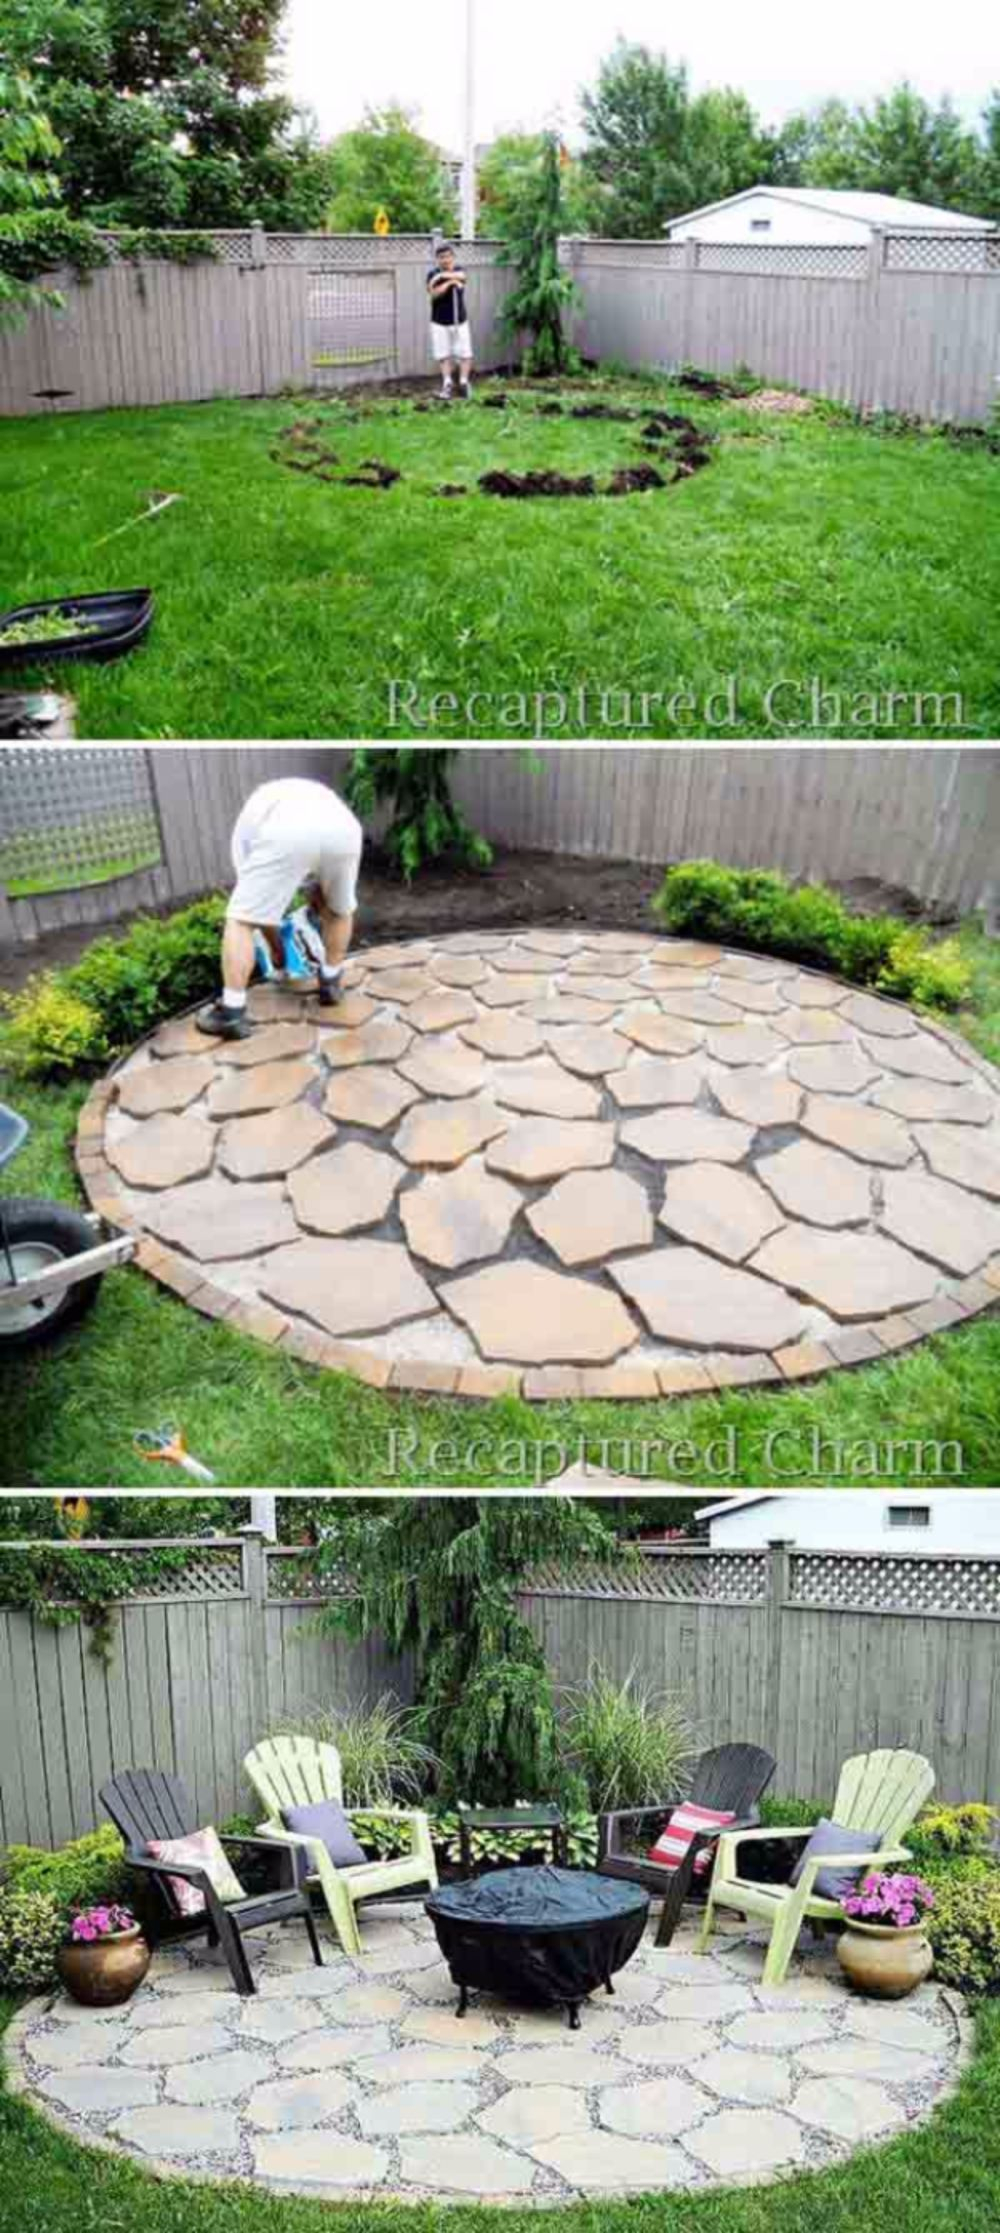 30 Diy Patio Ideas On A Budget Diy Patio Patios And Budgeting regarding Diy Backyard Ideas On A Budget